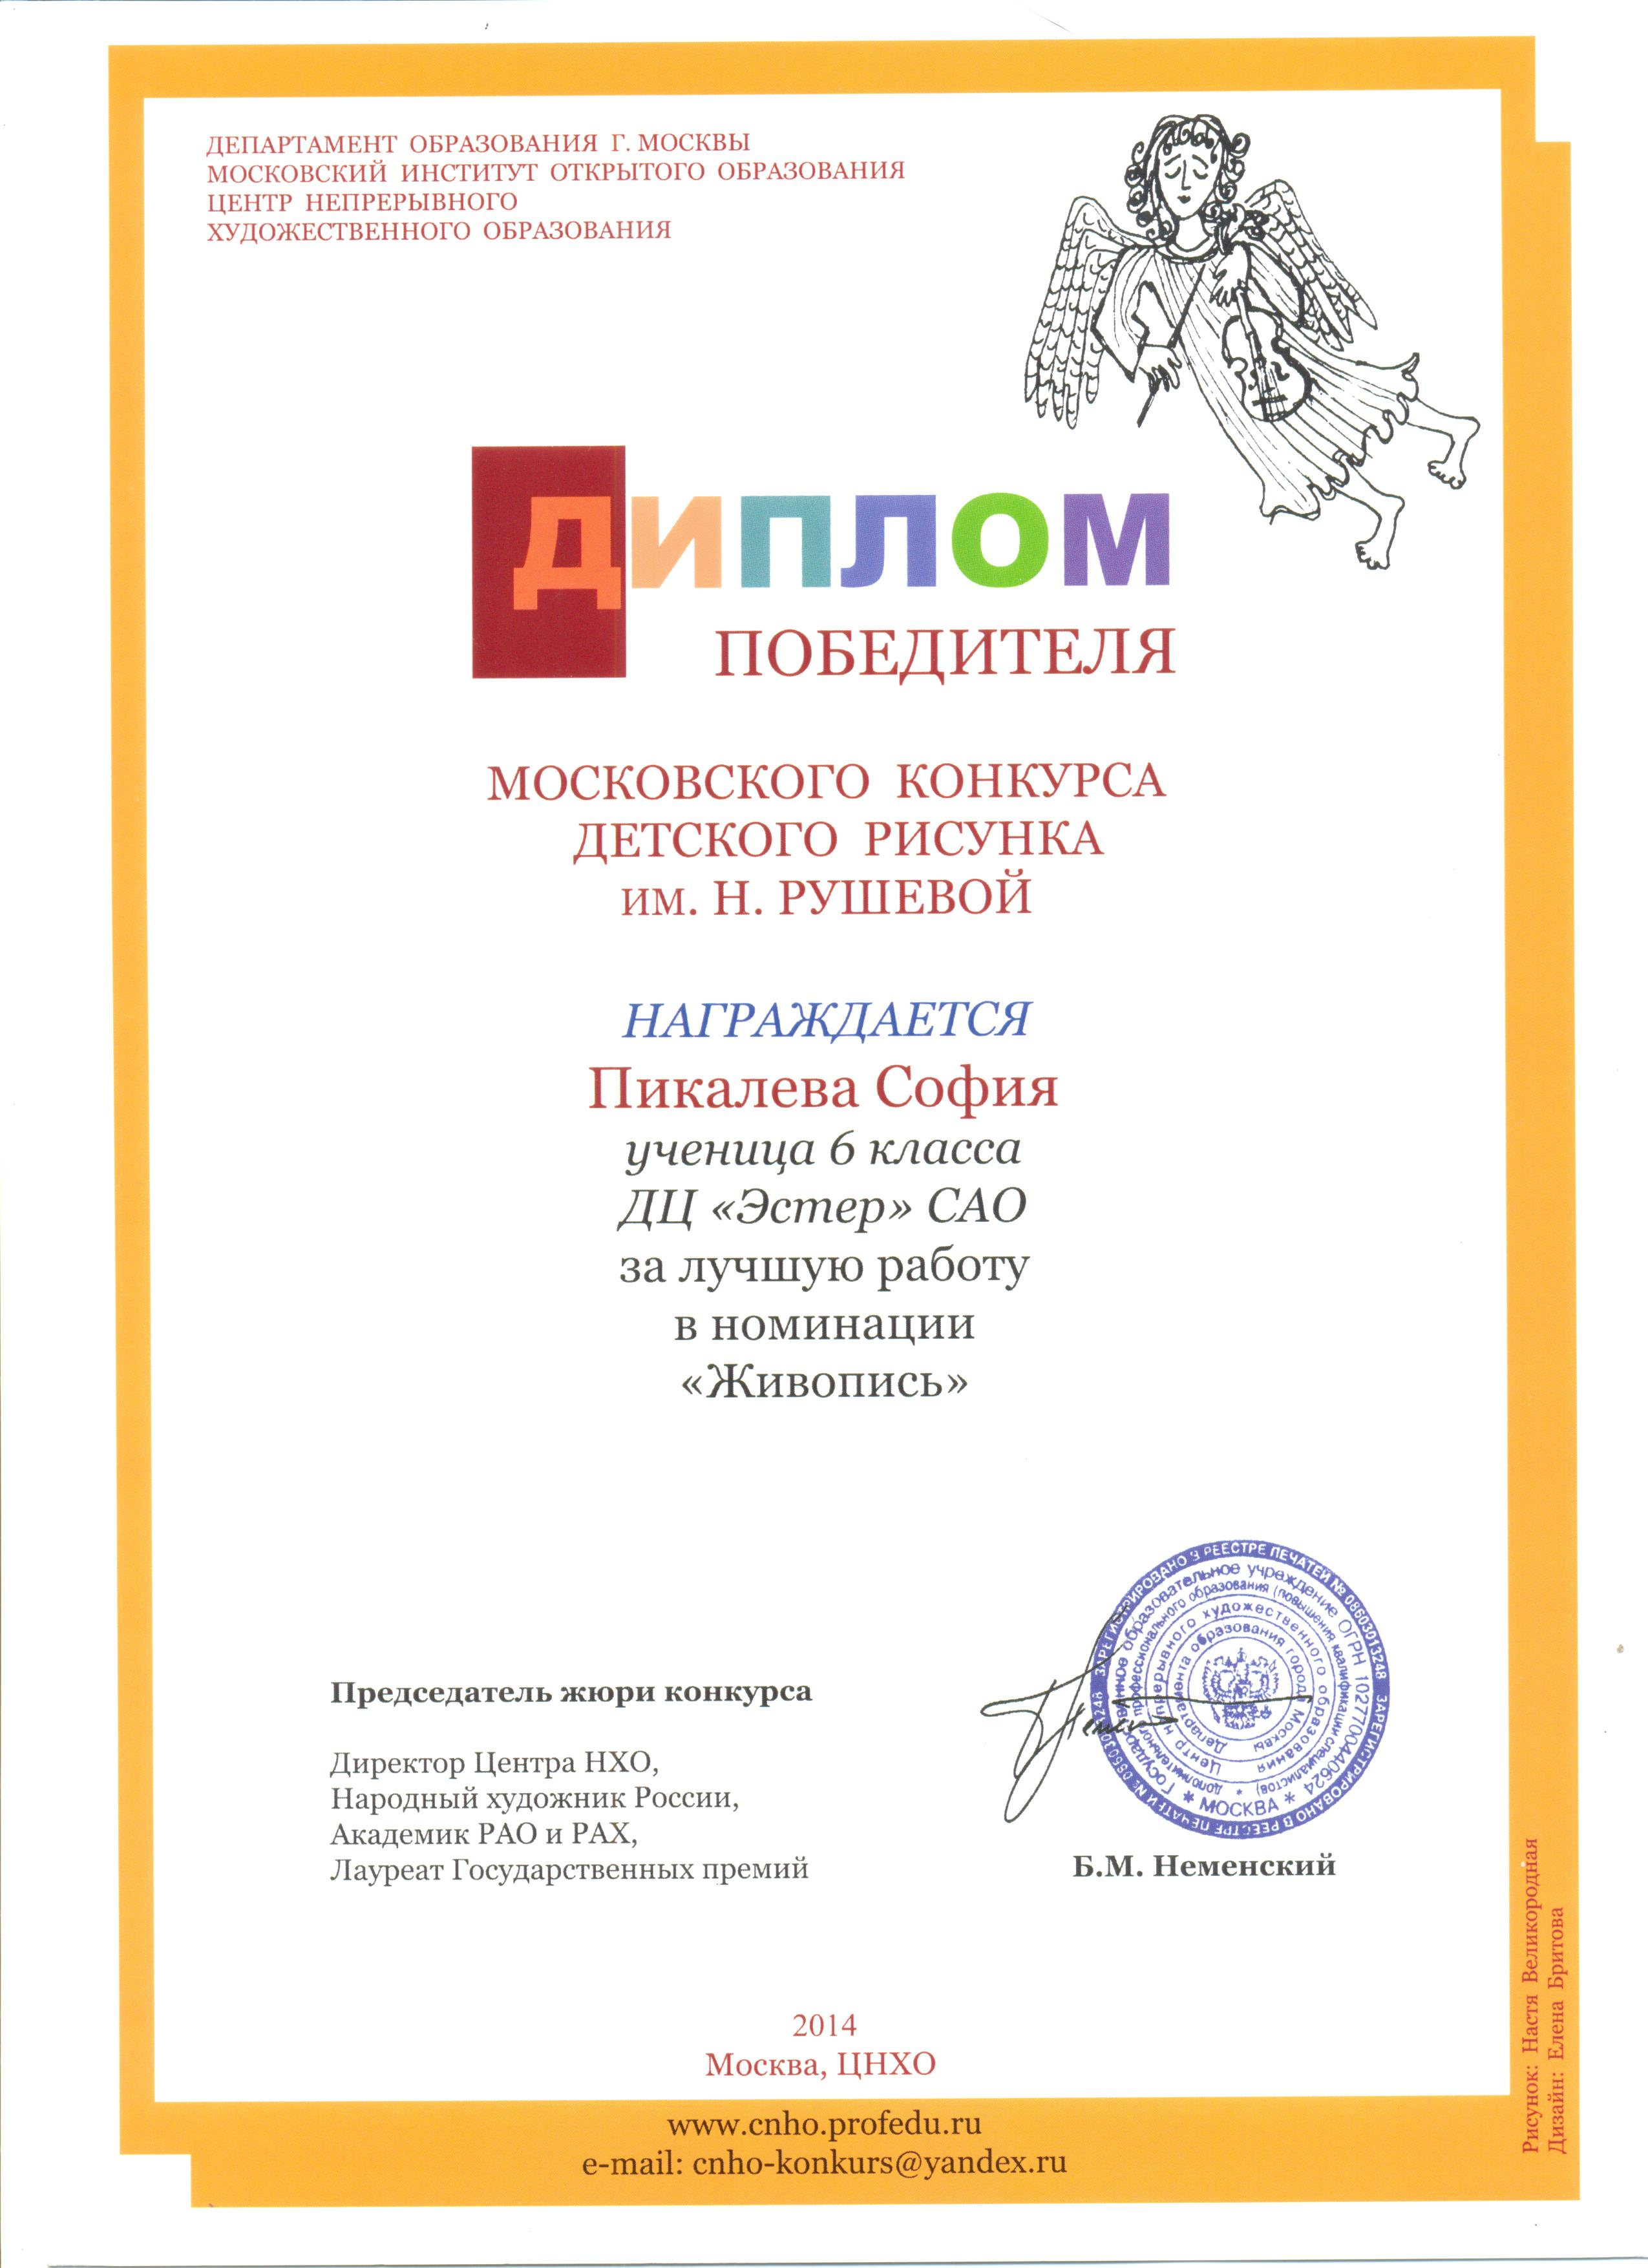 Art Competition of Children' Drawings, Moscow 2014